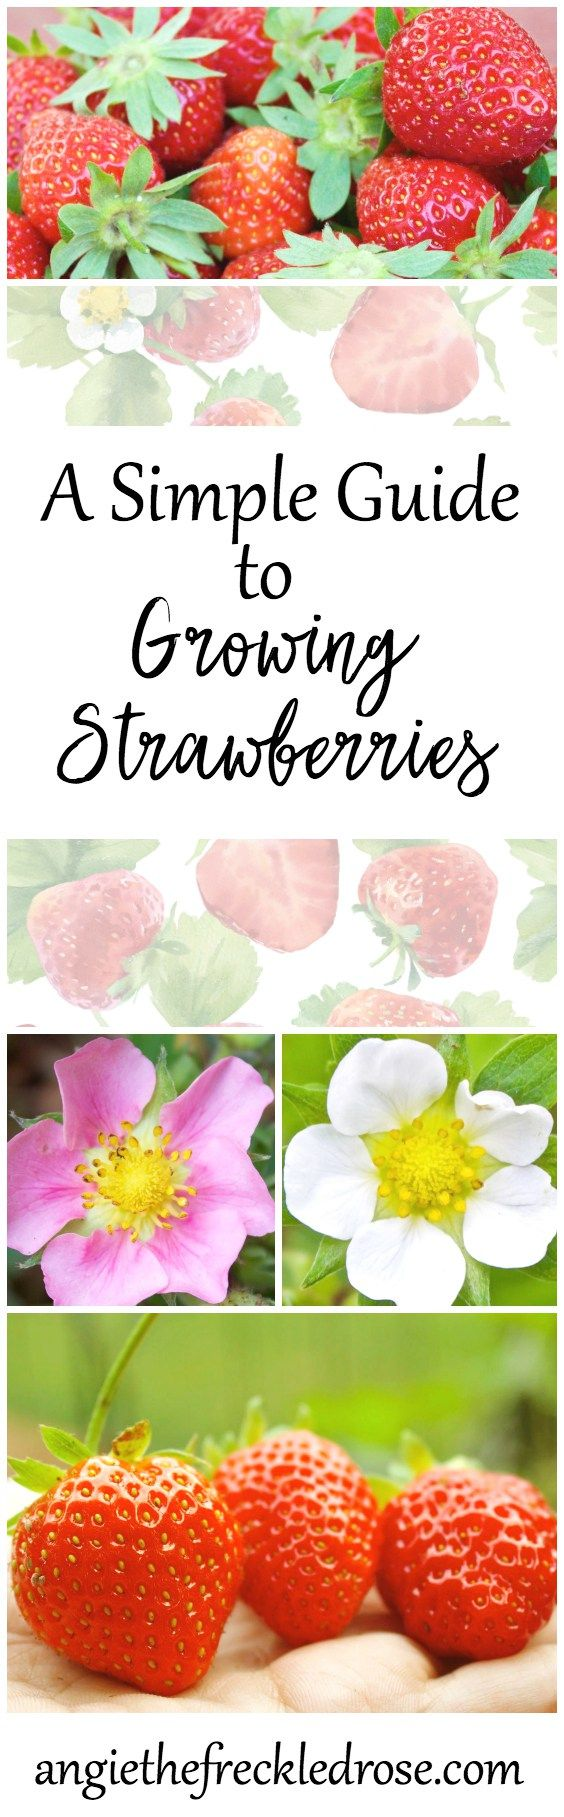 When I first started gardening, I couldn't wait to try growing strawberries! These red berries are jam-packed full of vitamins, fiber and antioxidants. I can never resist a bite of a plump, juicy and sweet strawberry. A Simple Guide To Growing Strawberrie